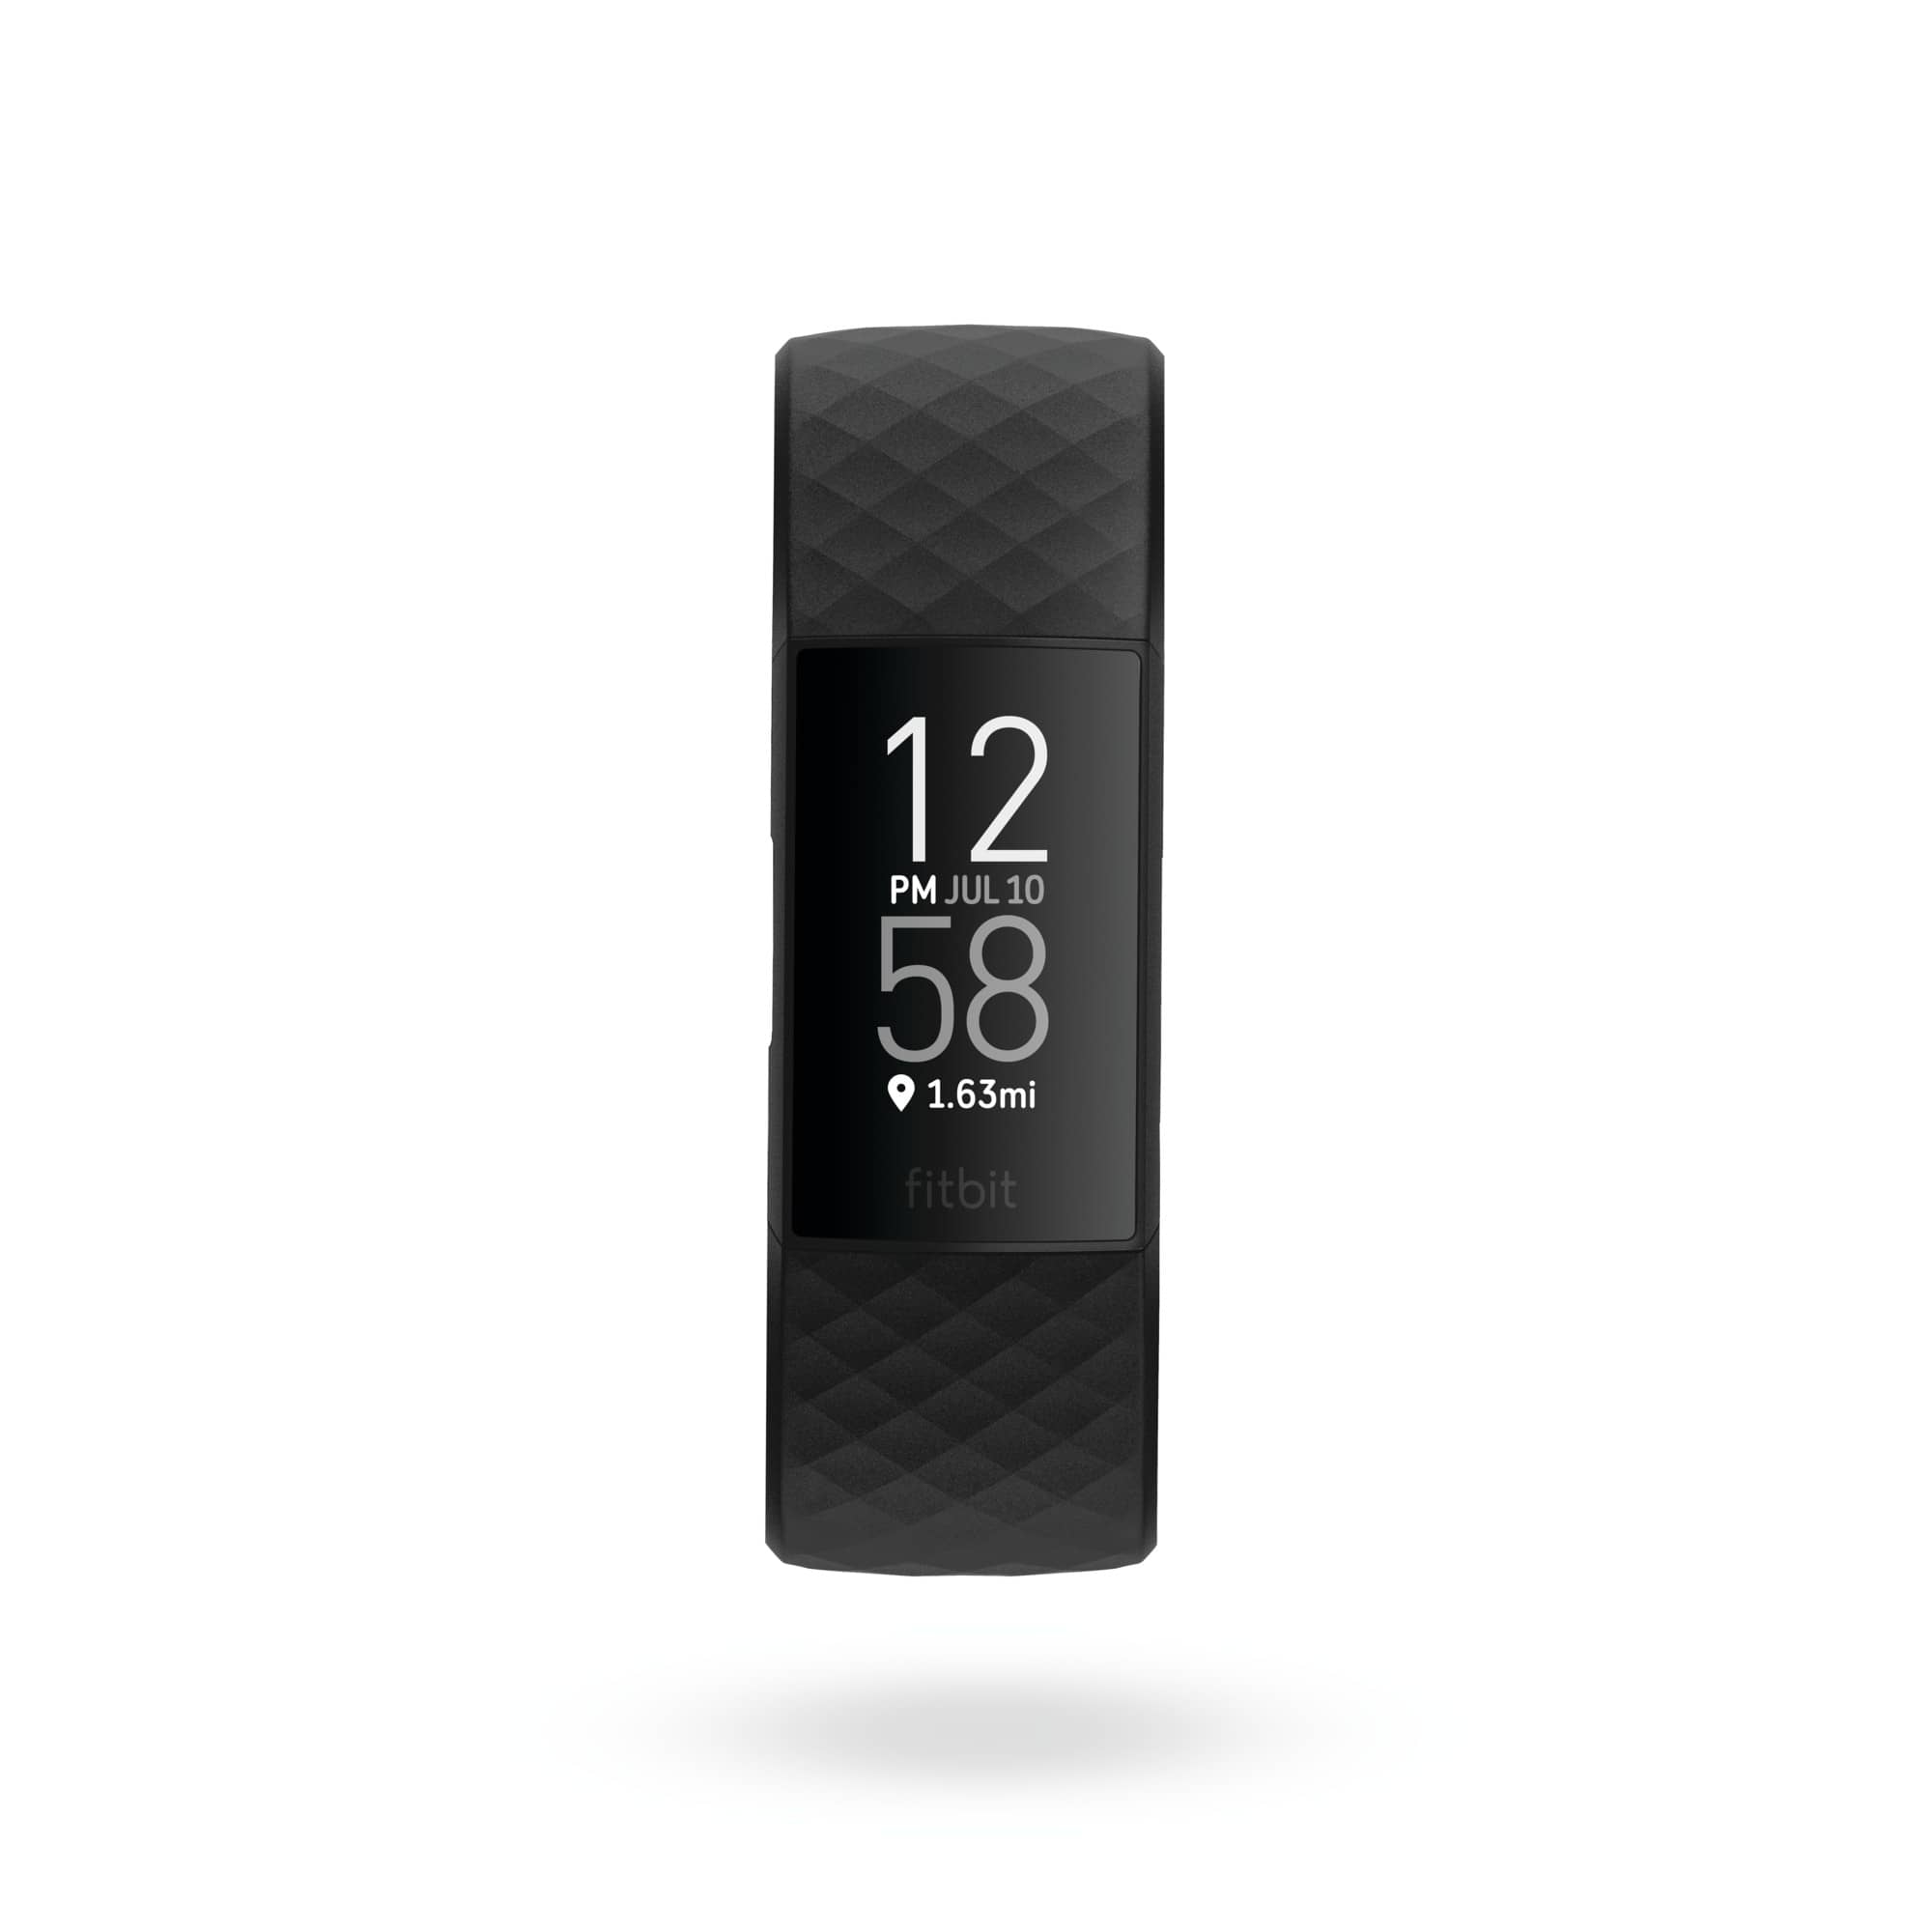 fitbit charge 4 02